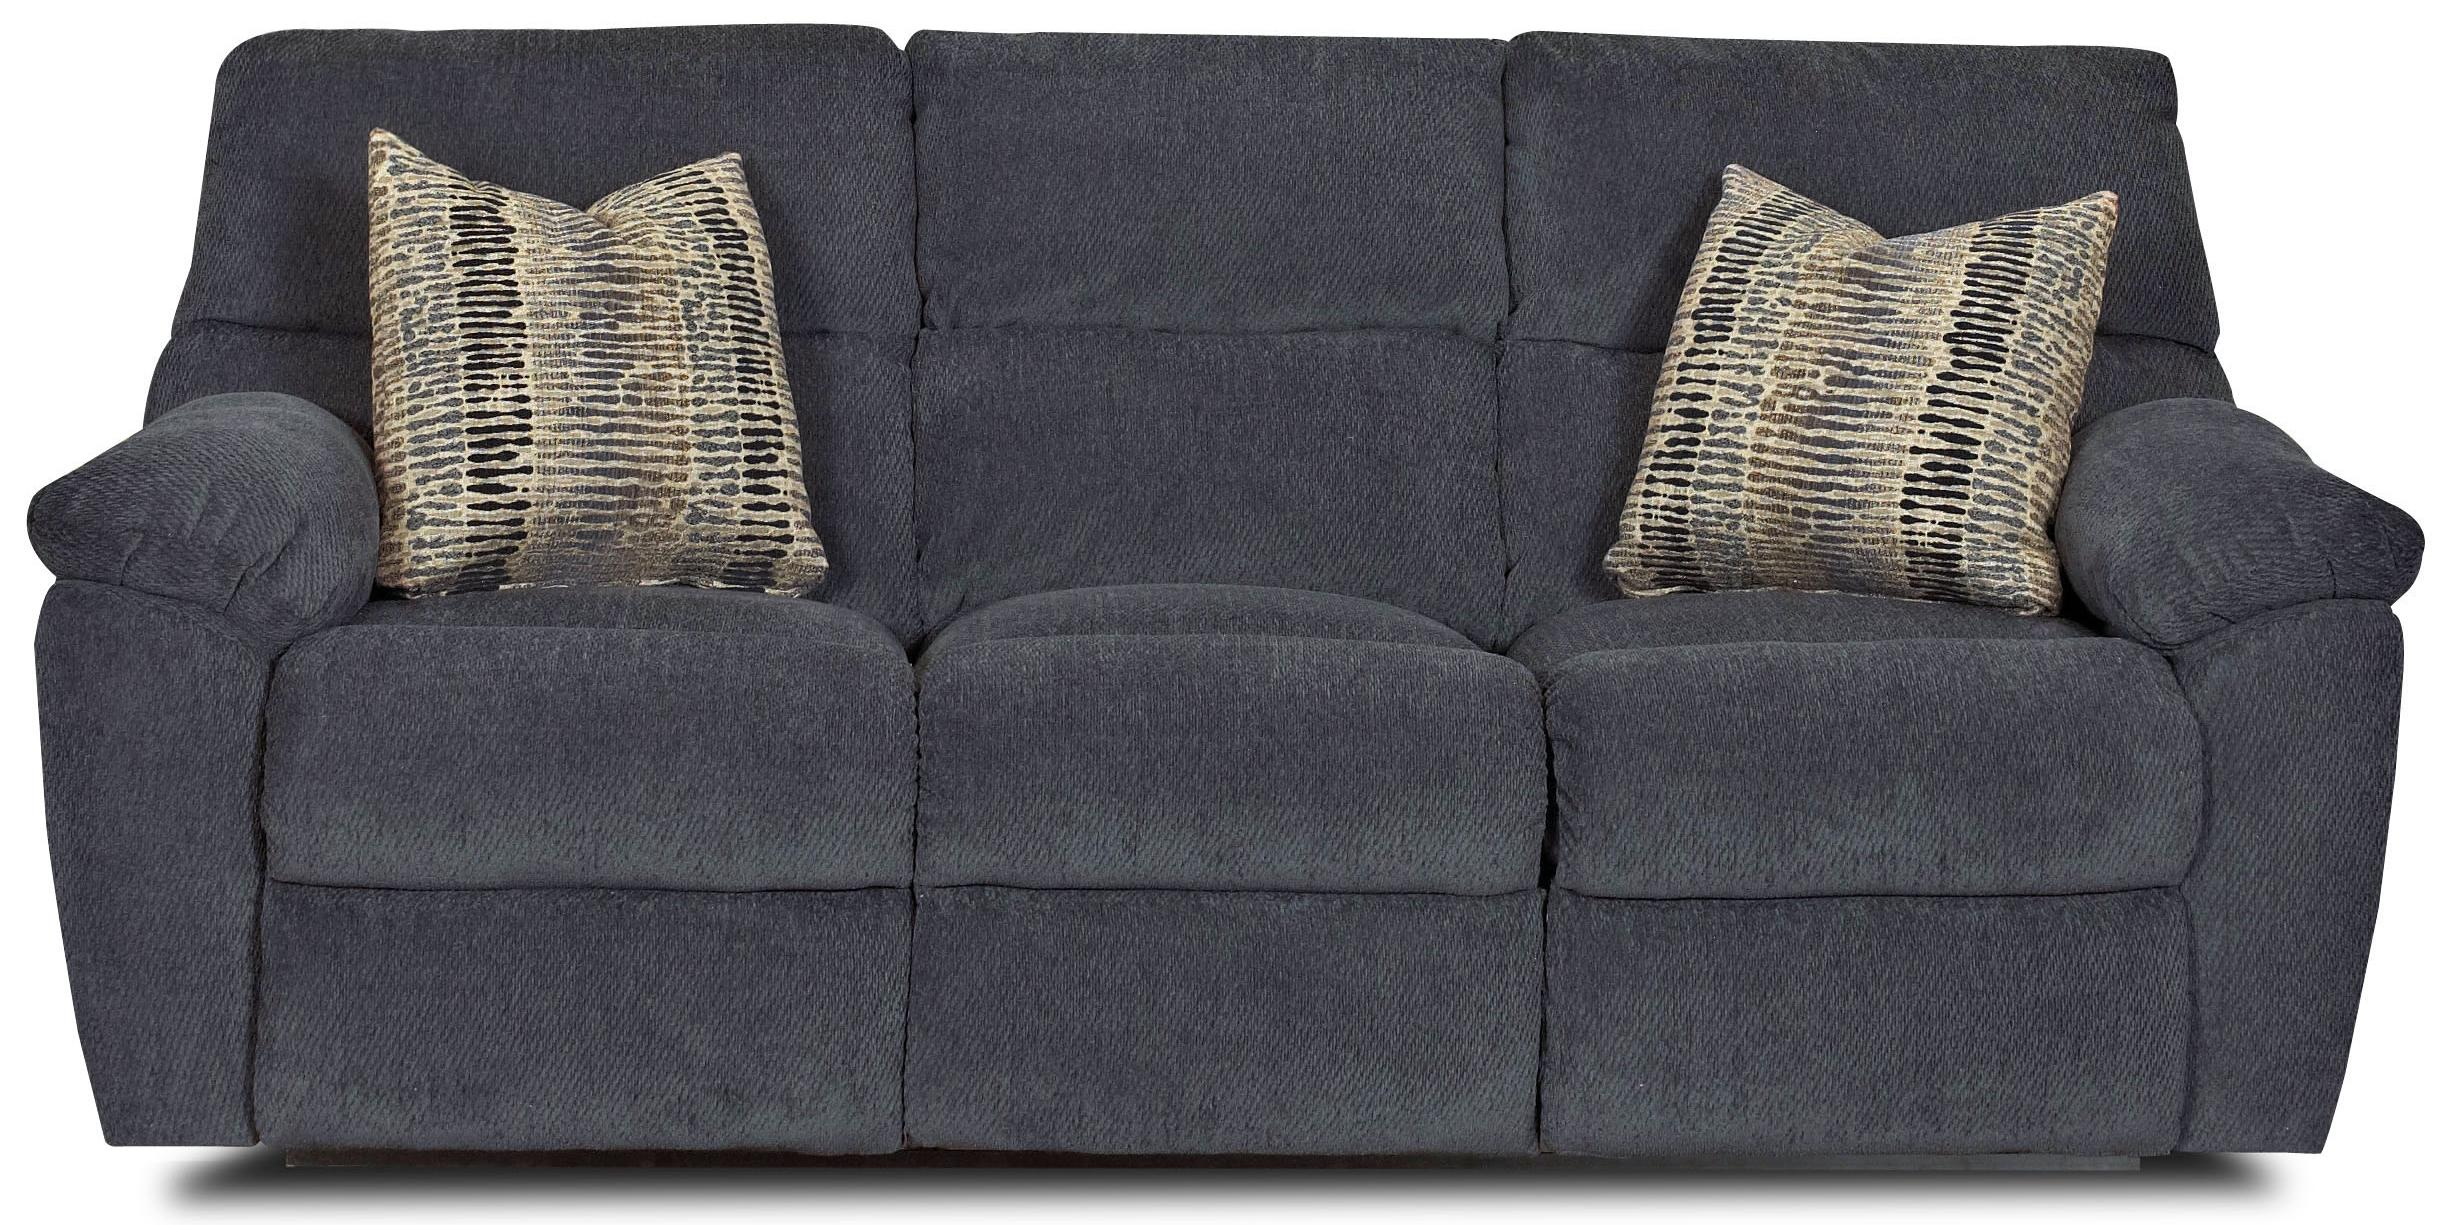 Casual Power Reclining Sofa with Pillow Arms and Accent Pillows